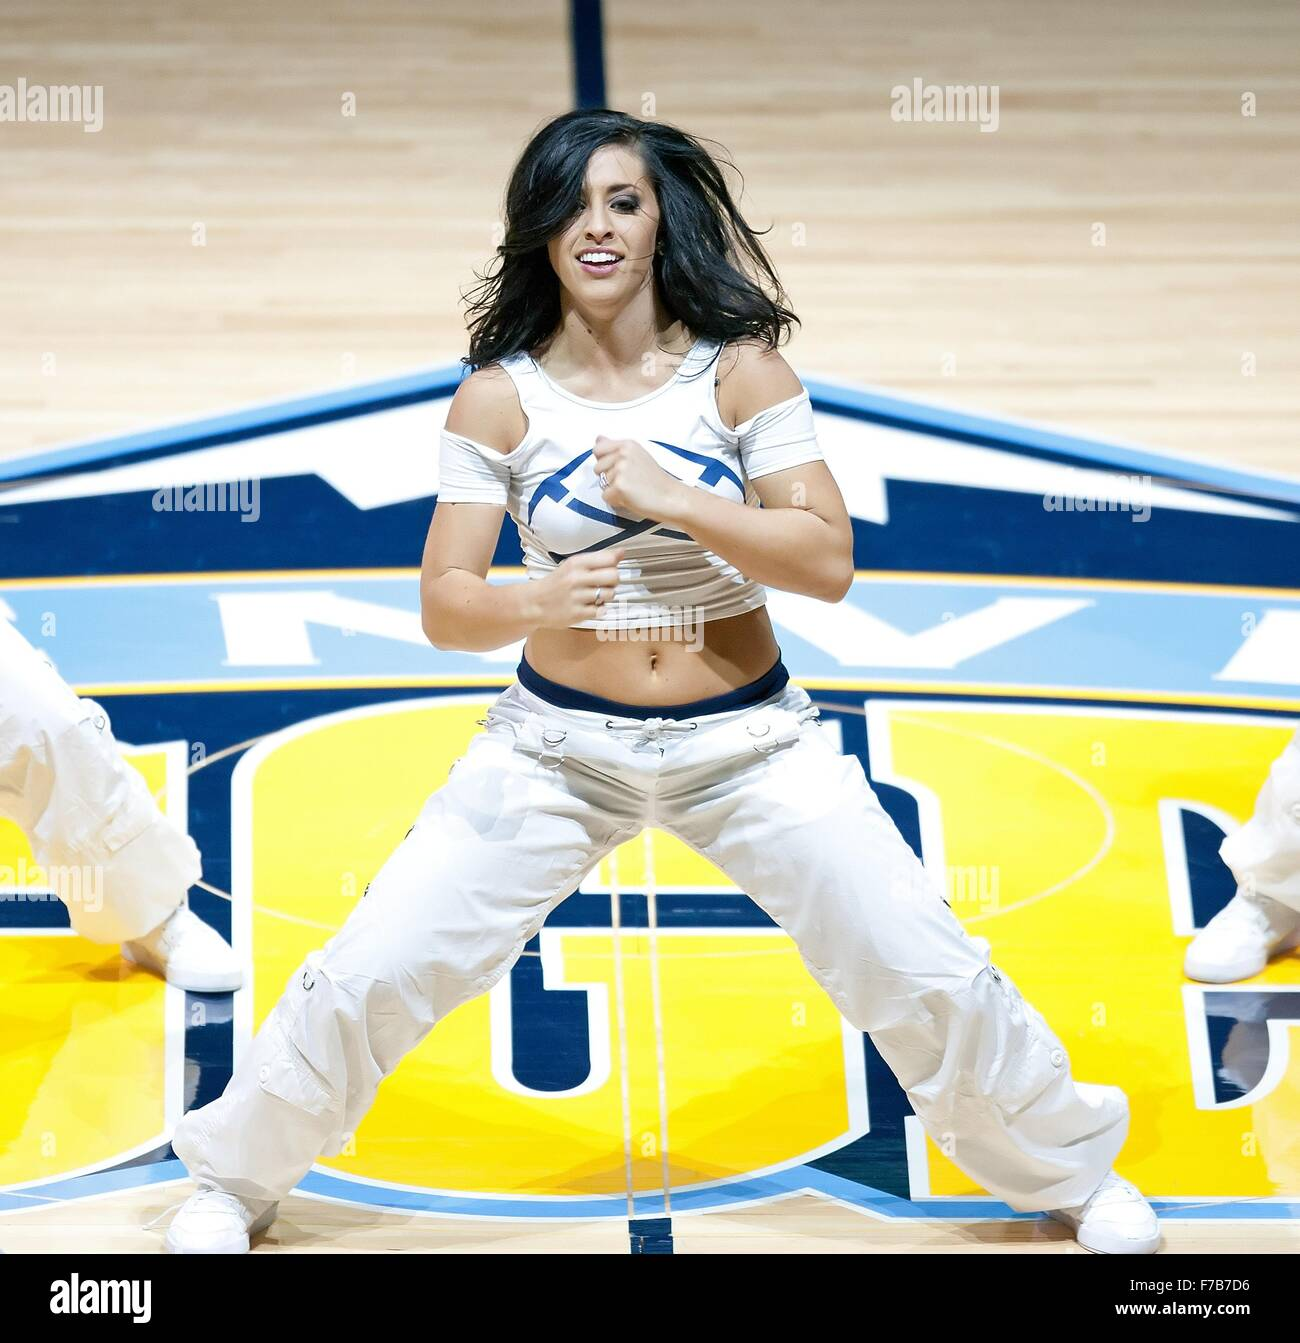 Denver Nuggets Dancers: Denver, Colorado, Usa. 27th Nov, 2015. The Denver Nuggets